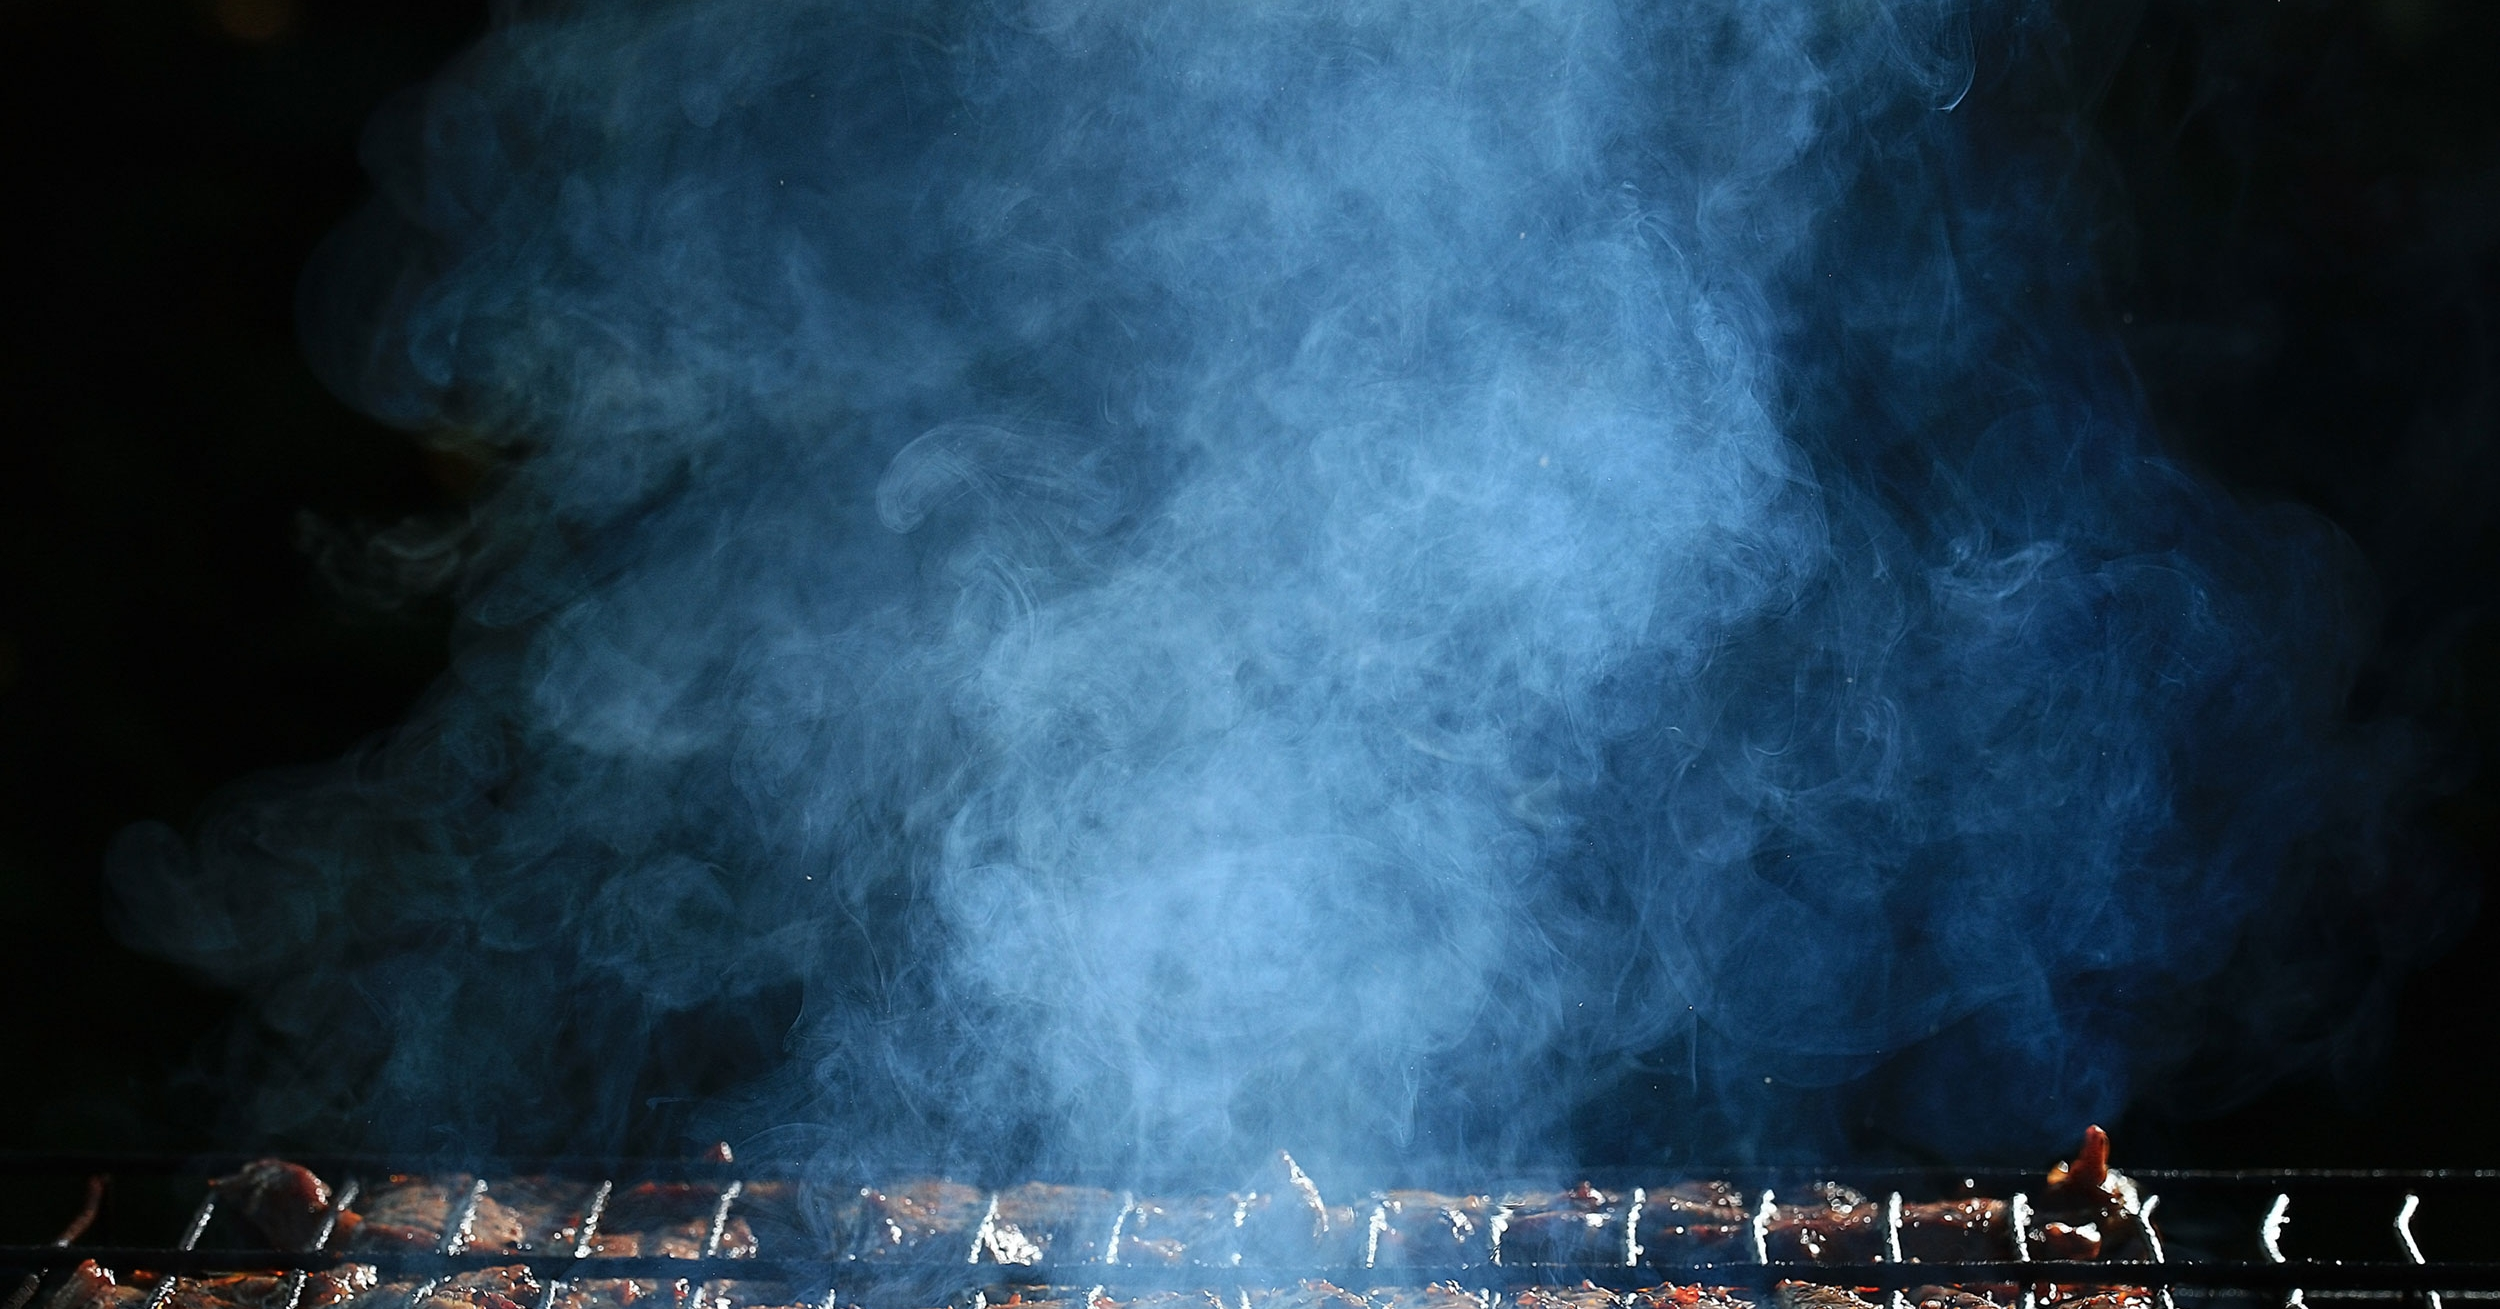 Smoked meats cause cancer. But car exhaust filters supposedly make smoked meats less carcinogenic.